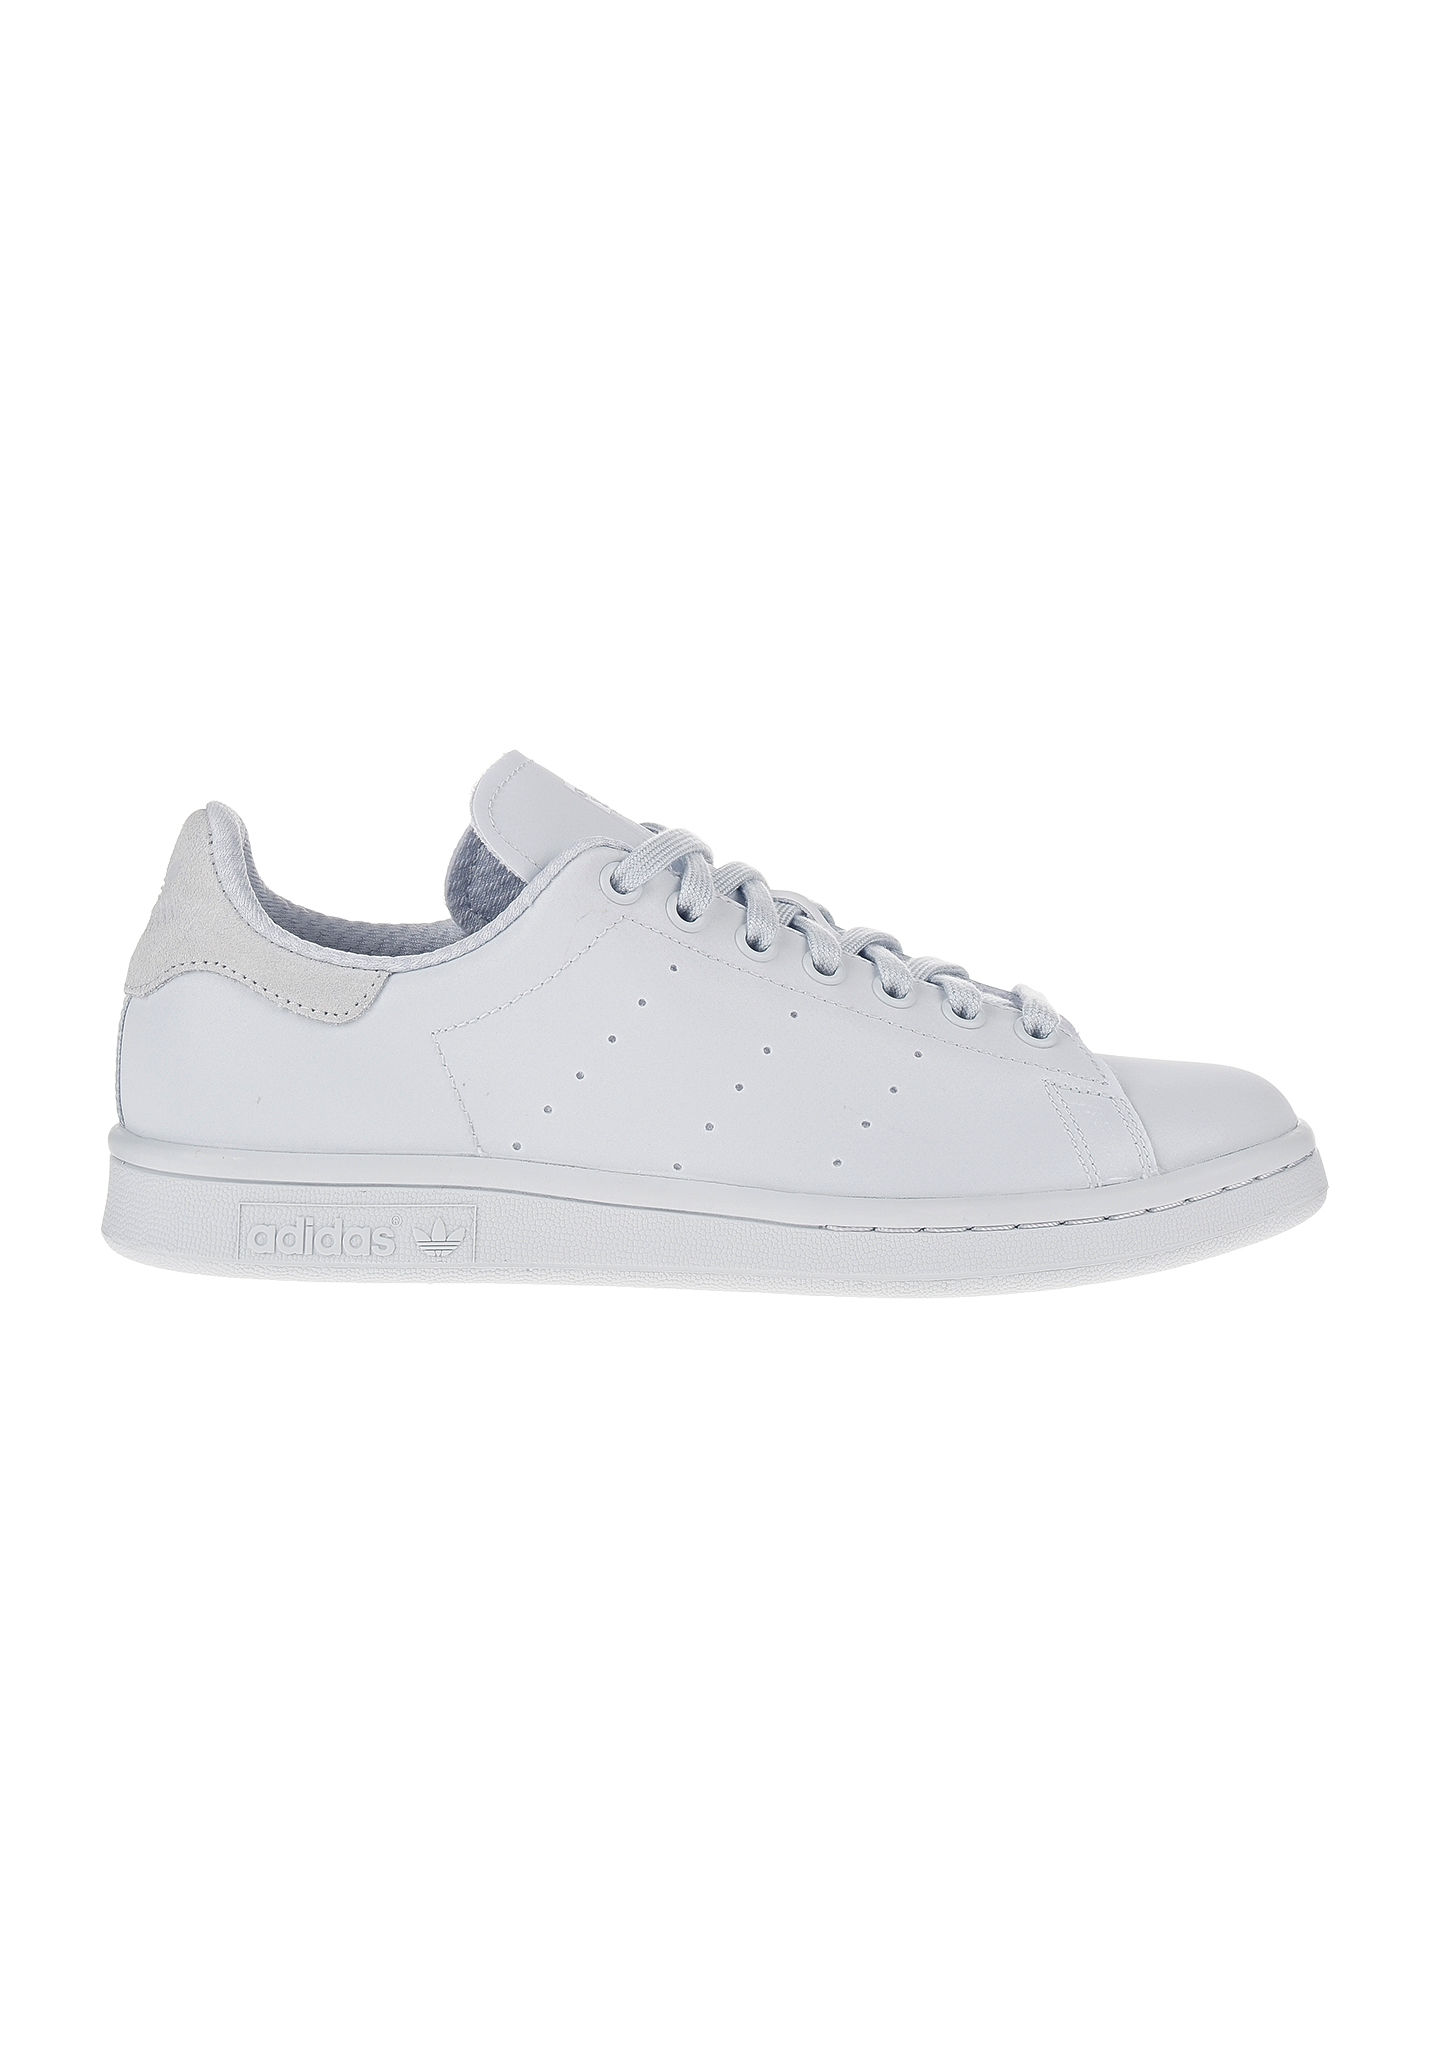 acquista adidas stan smith 2